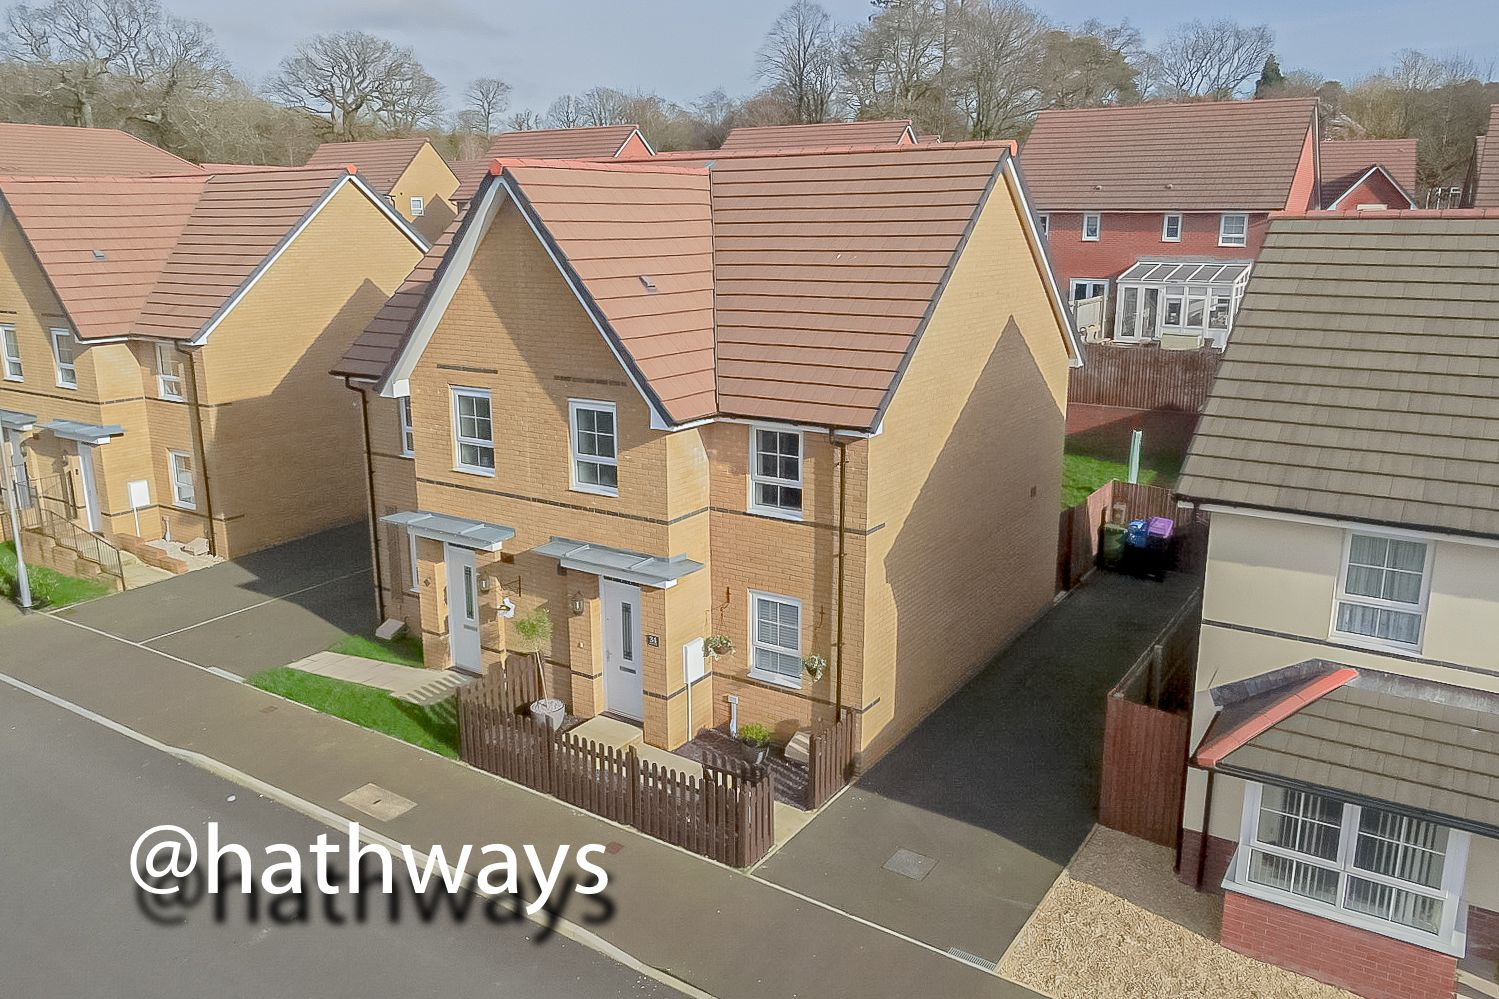 3 bed house for sale in John Jobbins Way, NP4